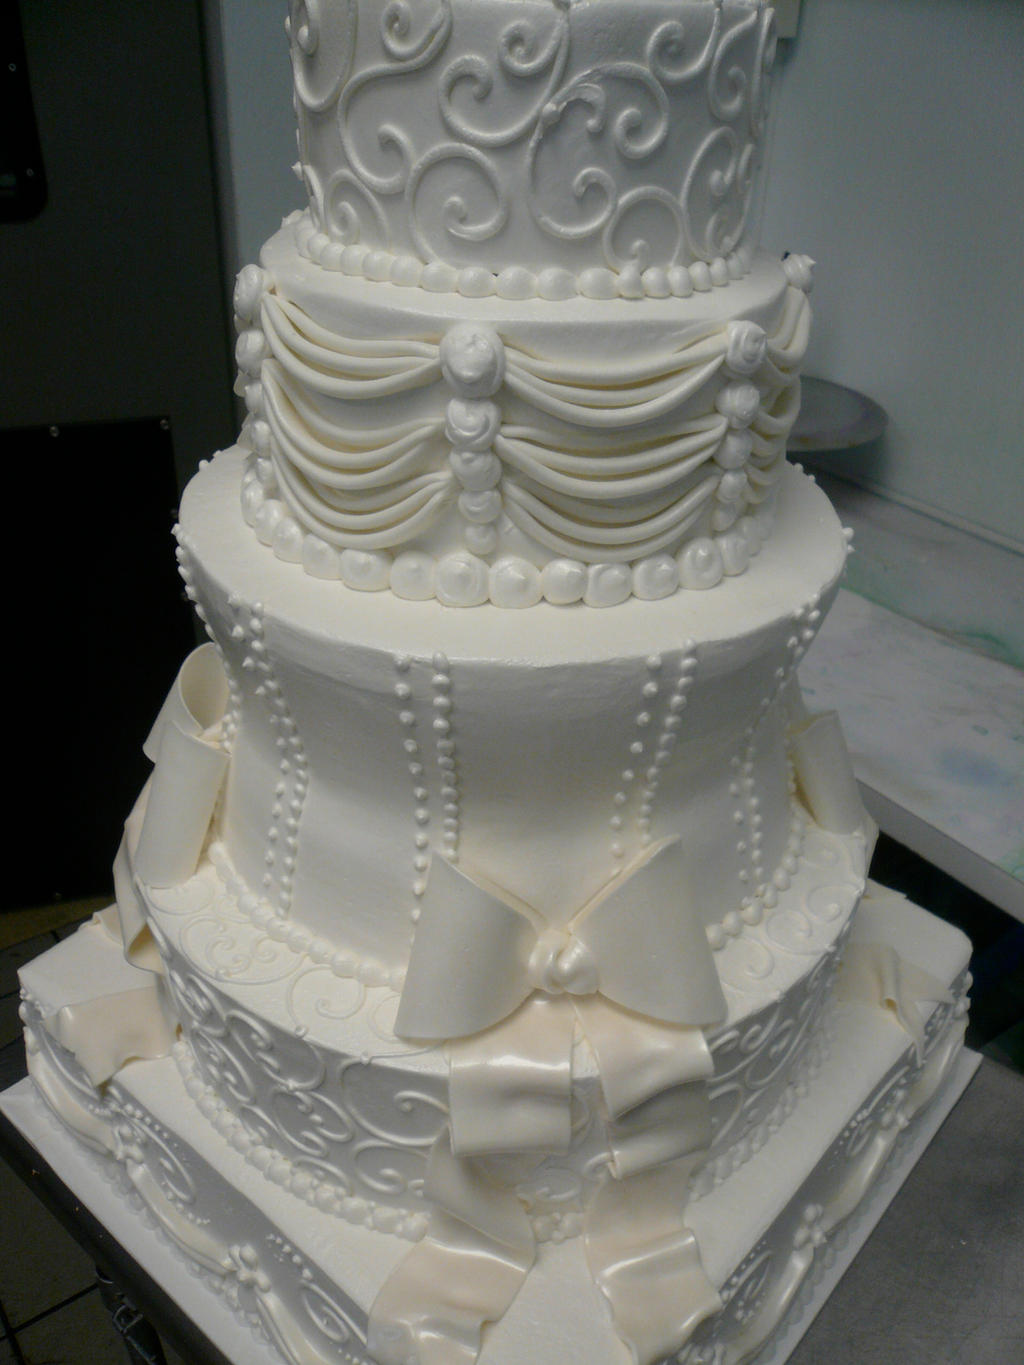 Princess Wedding Cake By Keki Girl On DeviantArt